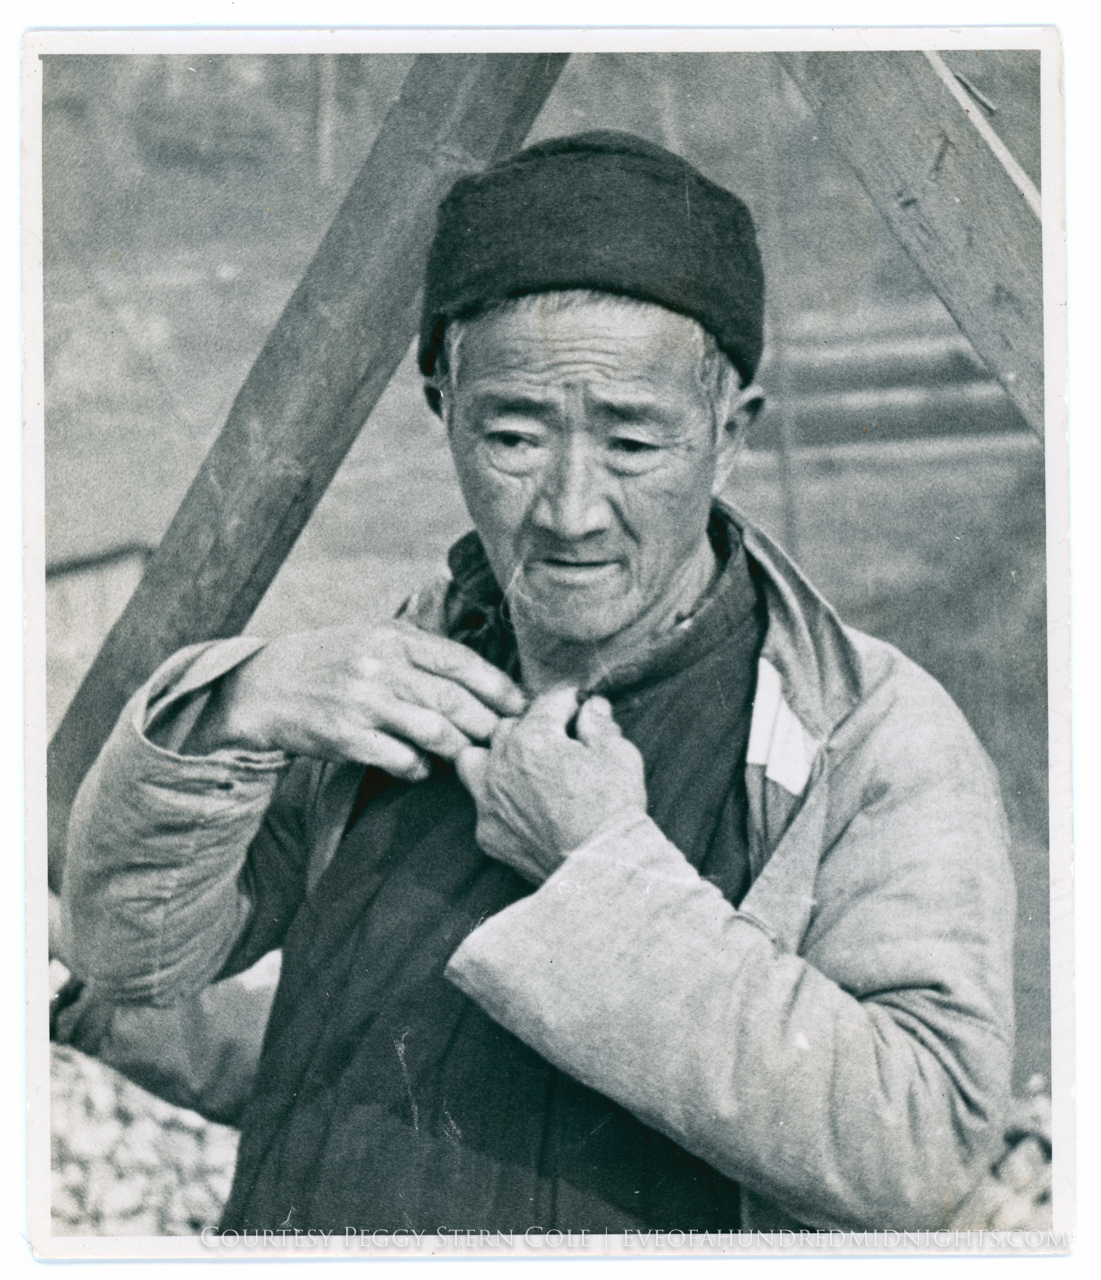 Nice portrait of old Chinese man with dark hat [rescan possibly needed].jpg